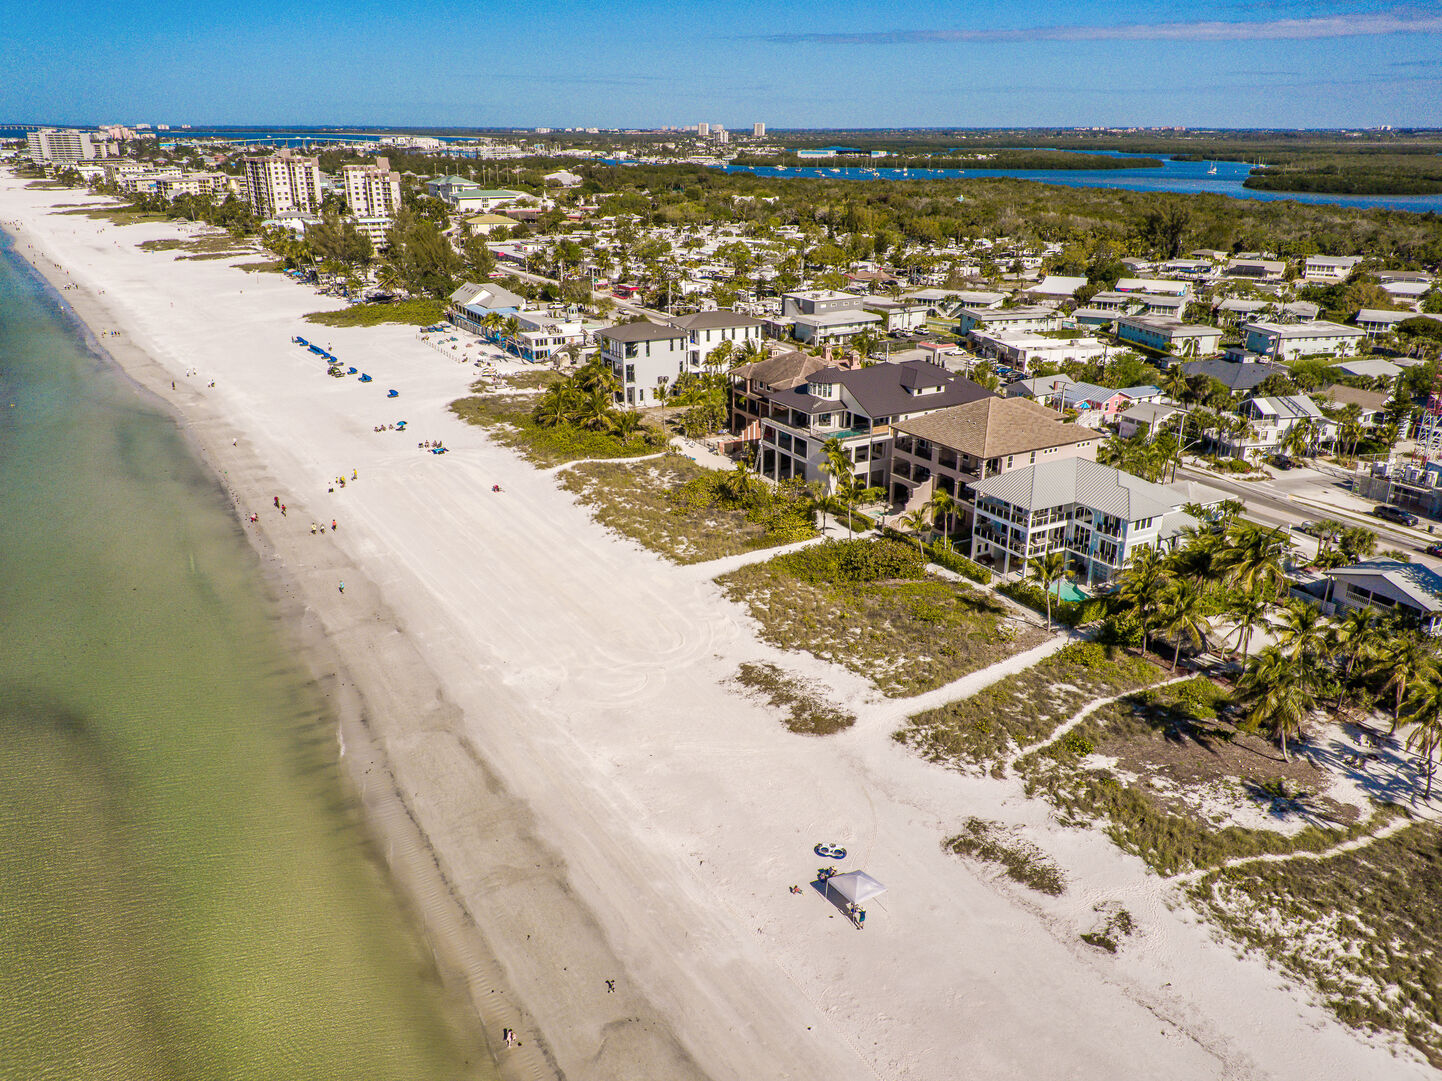 Aerial view of the coast near our Fort Myers vacation home rental